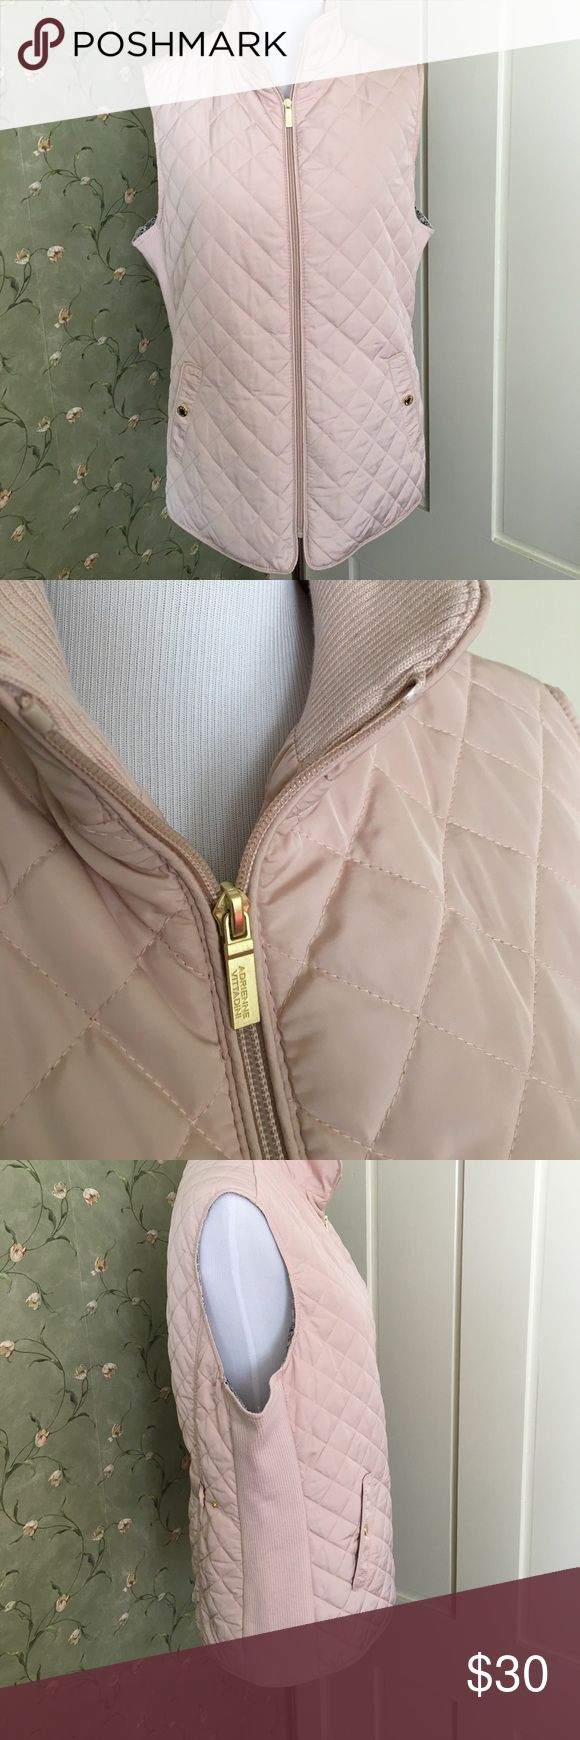 Adrienne Vittadini Quilted Vest Adrienne Vittadini Quilted Vest. Brand new and never been worn. Great color of Spring months. Adrienne Vittadini Jackets & Coats Vests